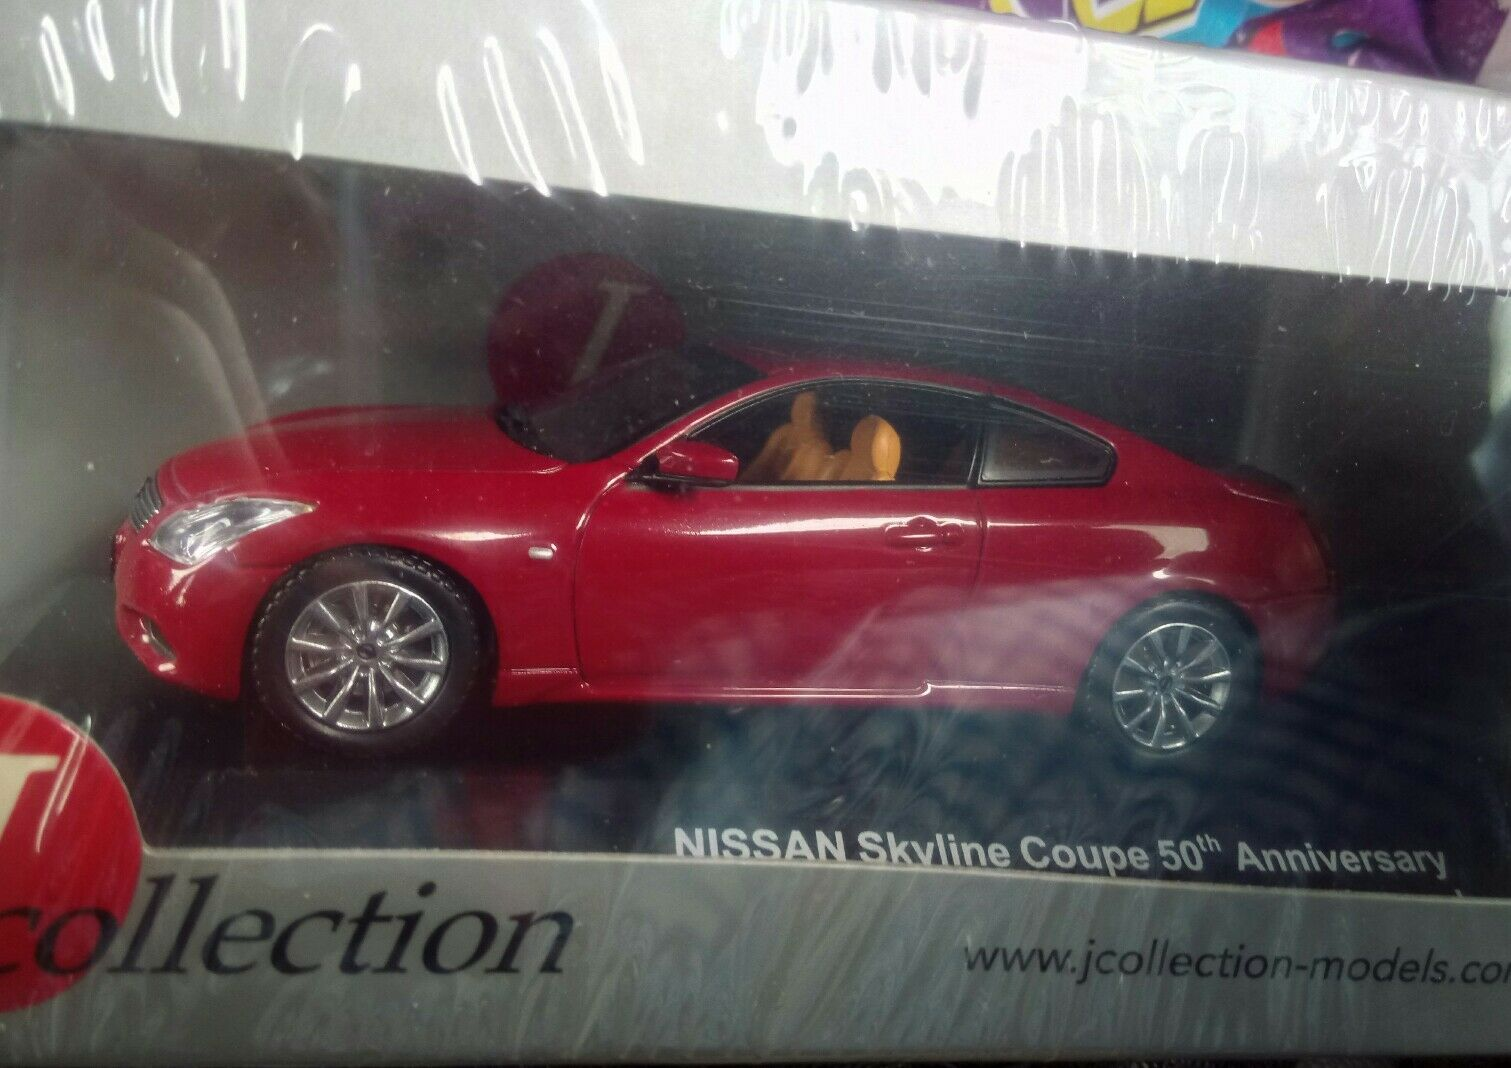 Kyosho JCollection Nissan Skyline coupe 2007 50th anniversary 1 43 43 43 scale MIB deab80